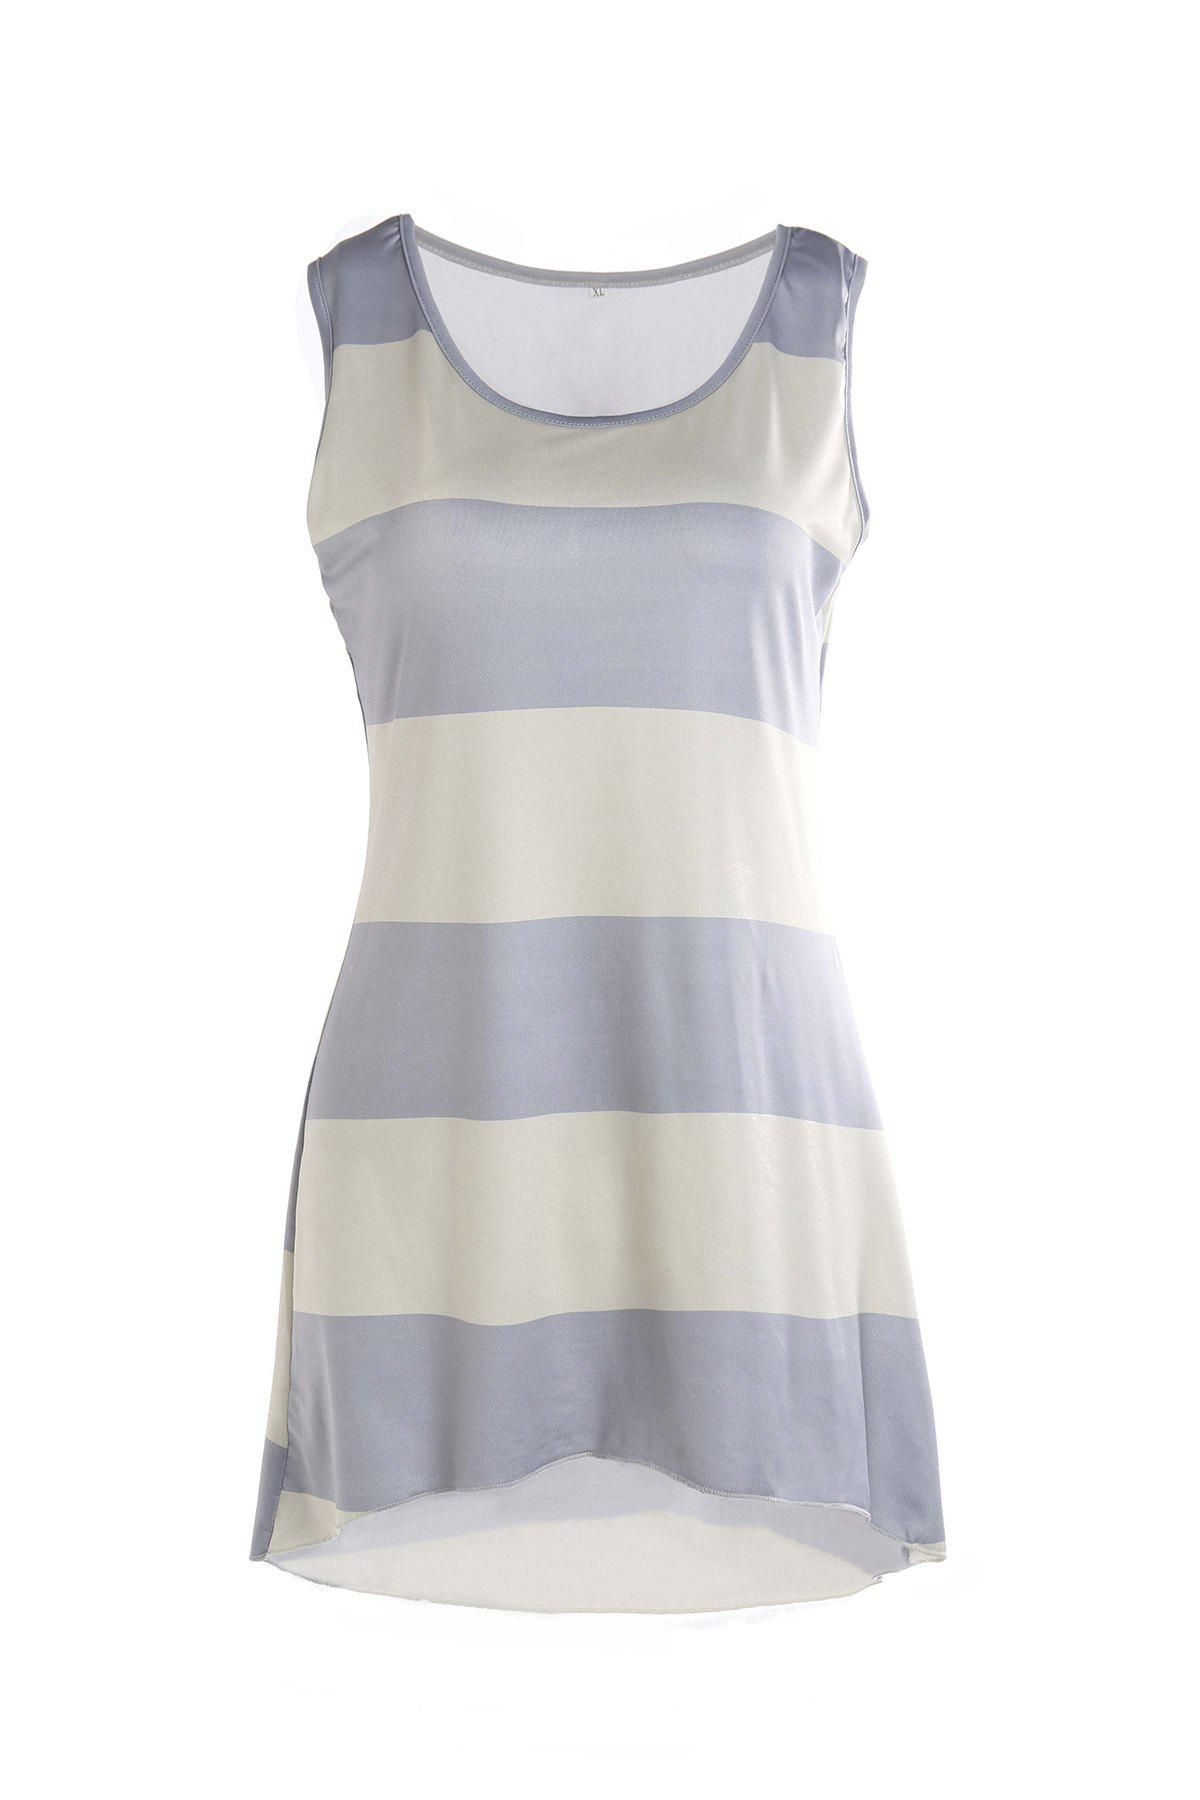 Stylish Scoop Collar Sleeveless Asymmetrical Striped Women's Tank Top - COLORMIX M